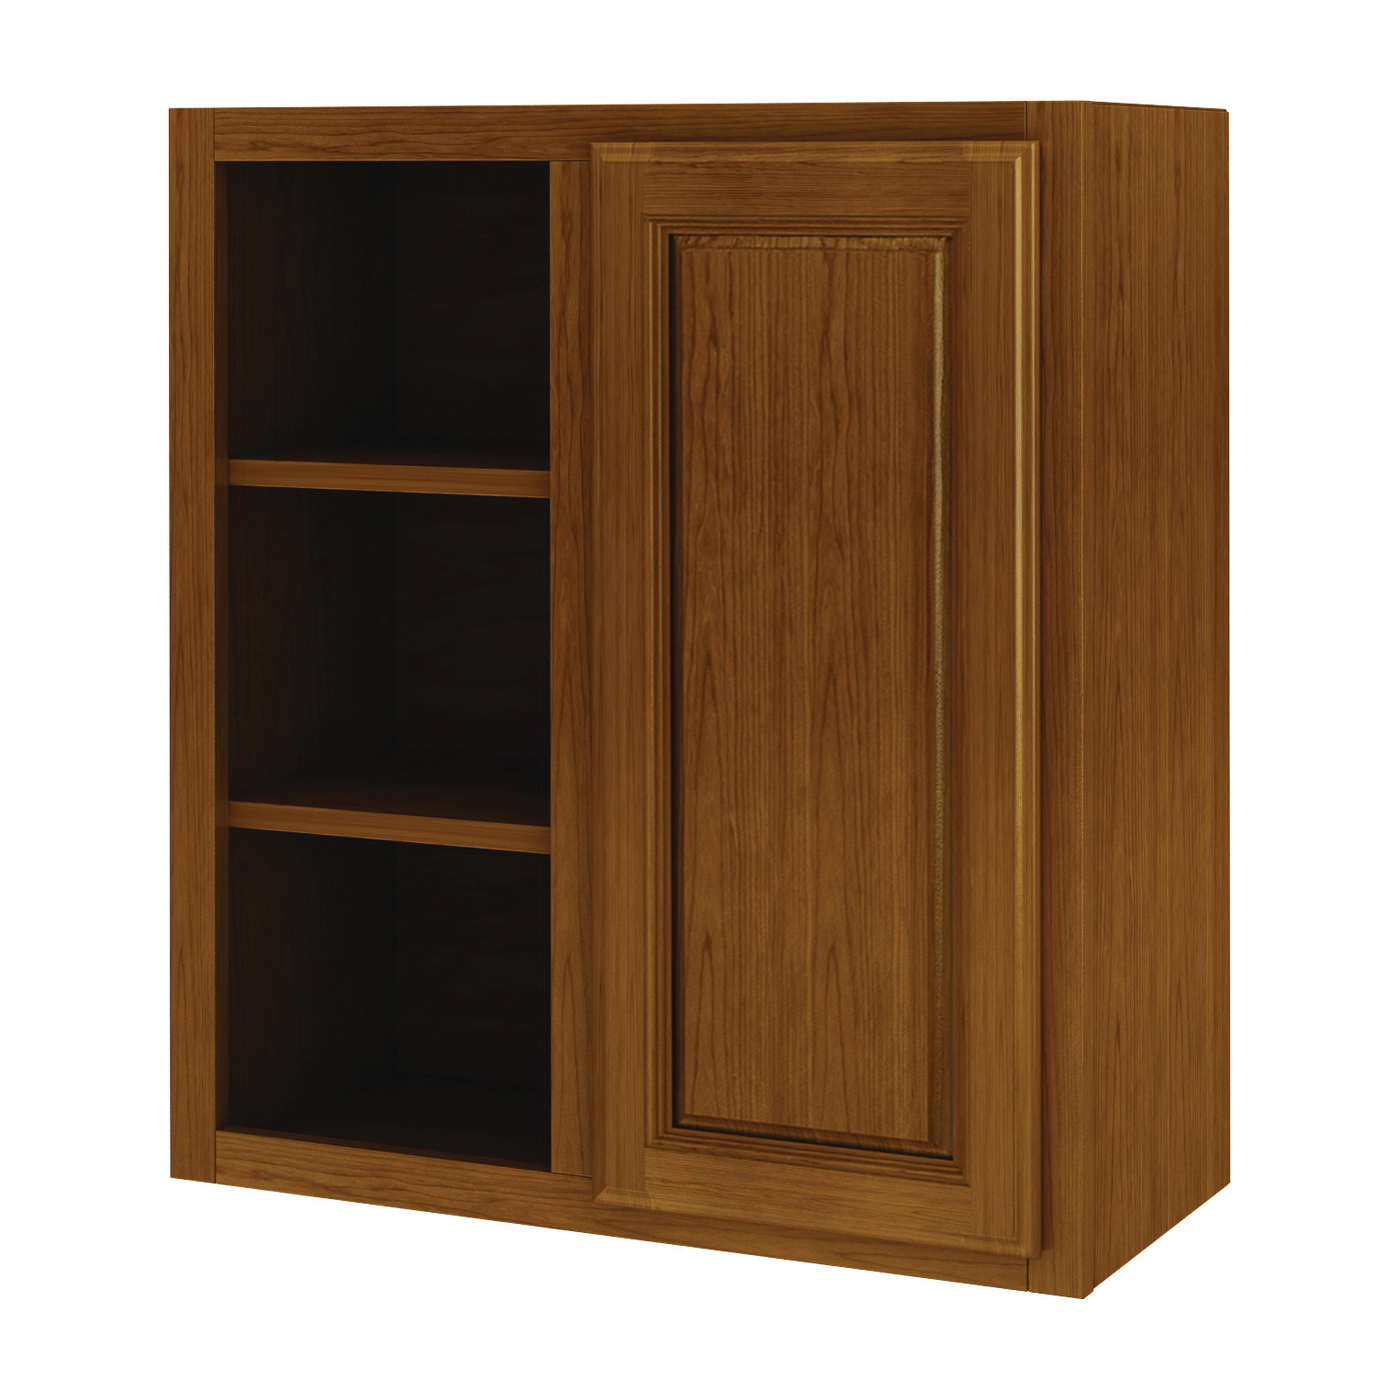 Picture of Sunco Randolph WB2730RT/A Kitchen Cabinet, 27 in OAW, 12 in OAD, 30 in OAH, Wood, Amber, 2-Shelf